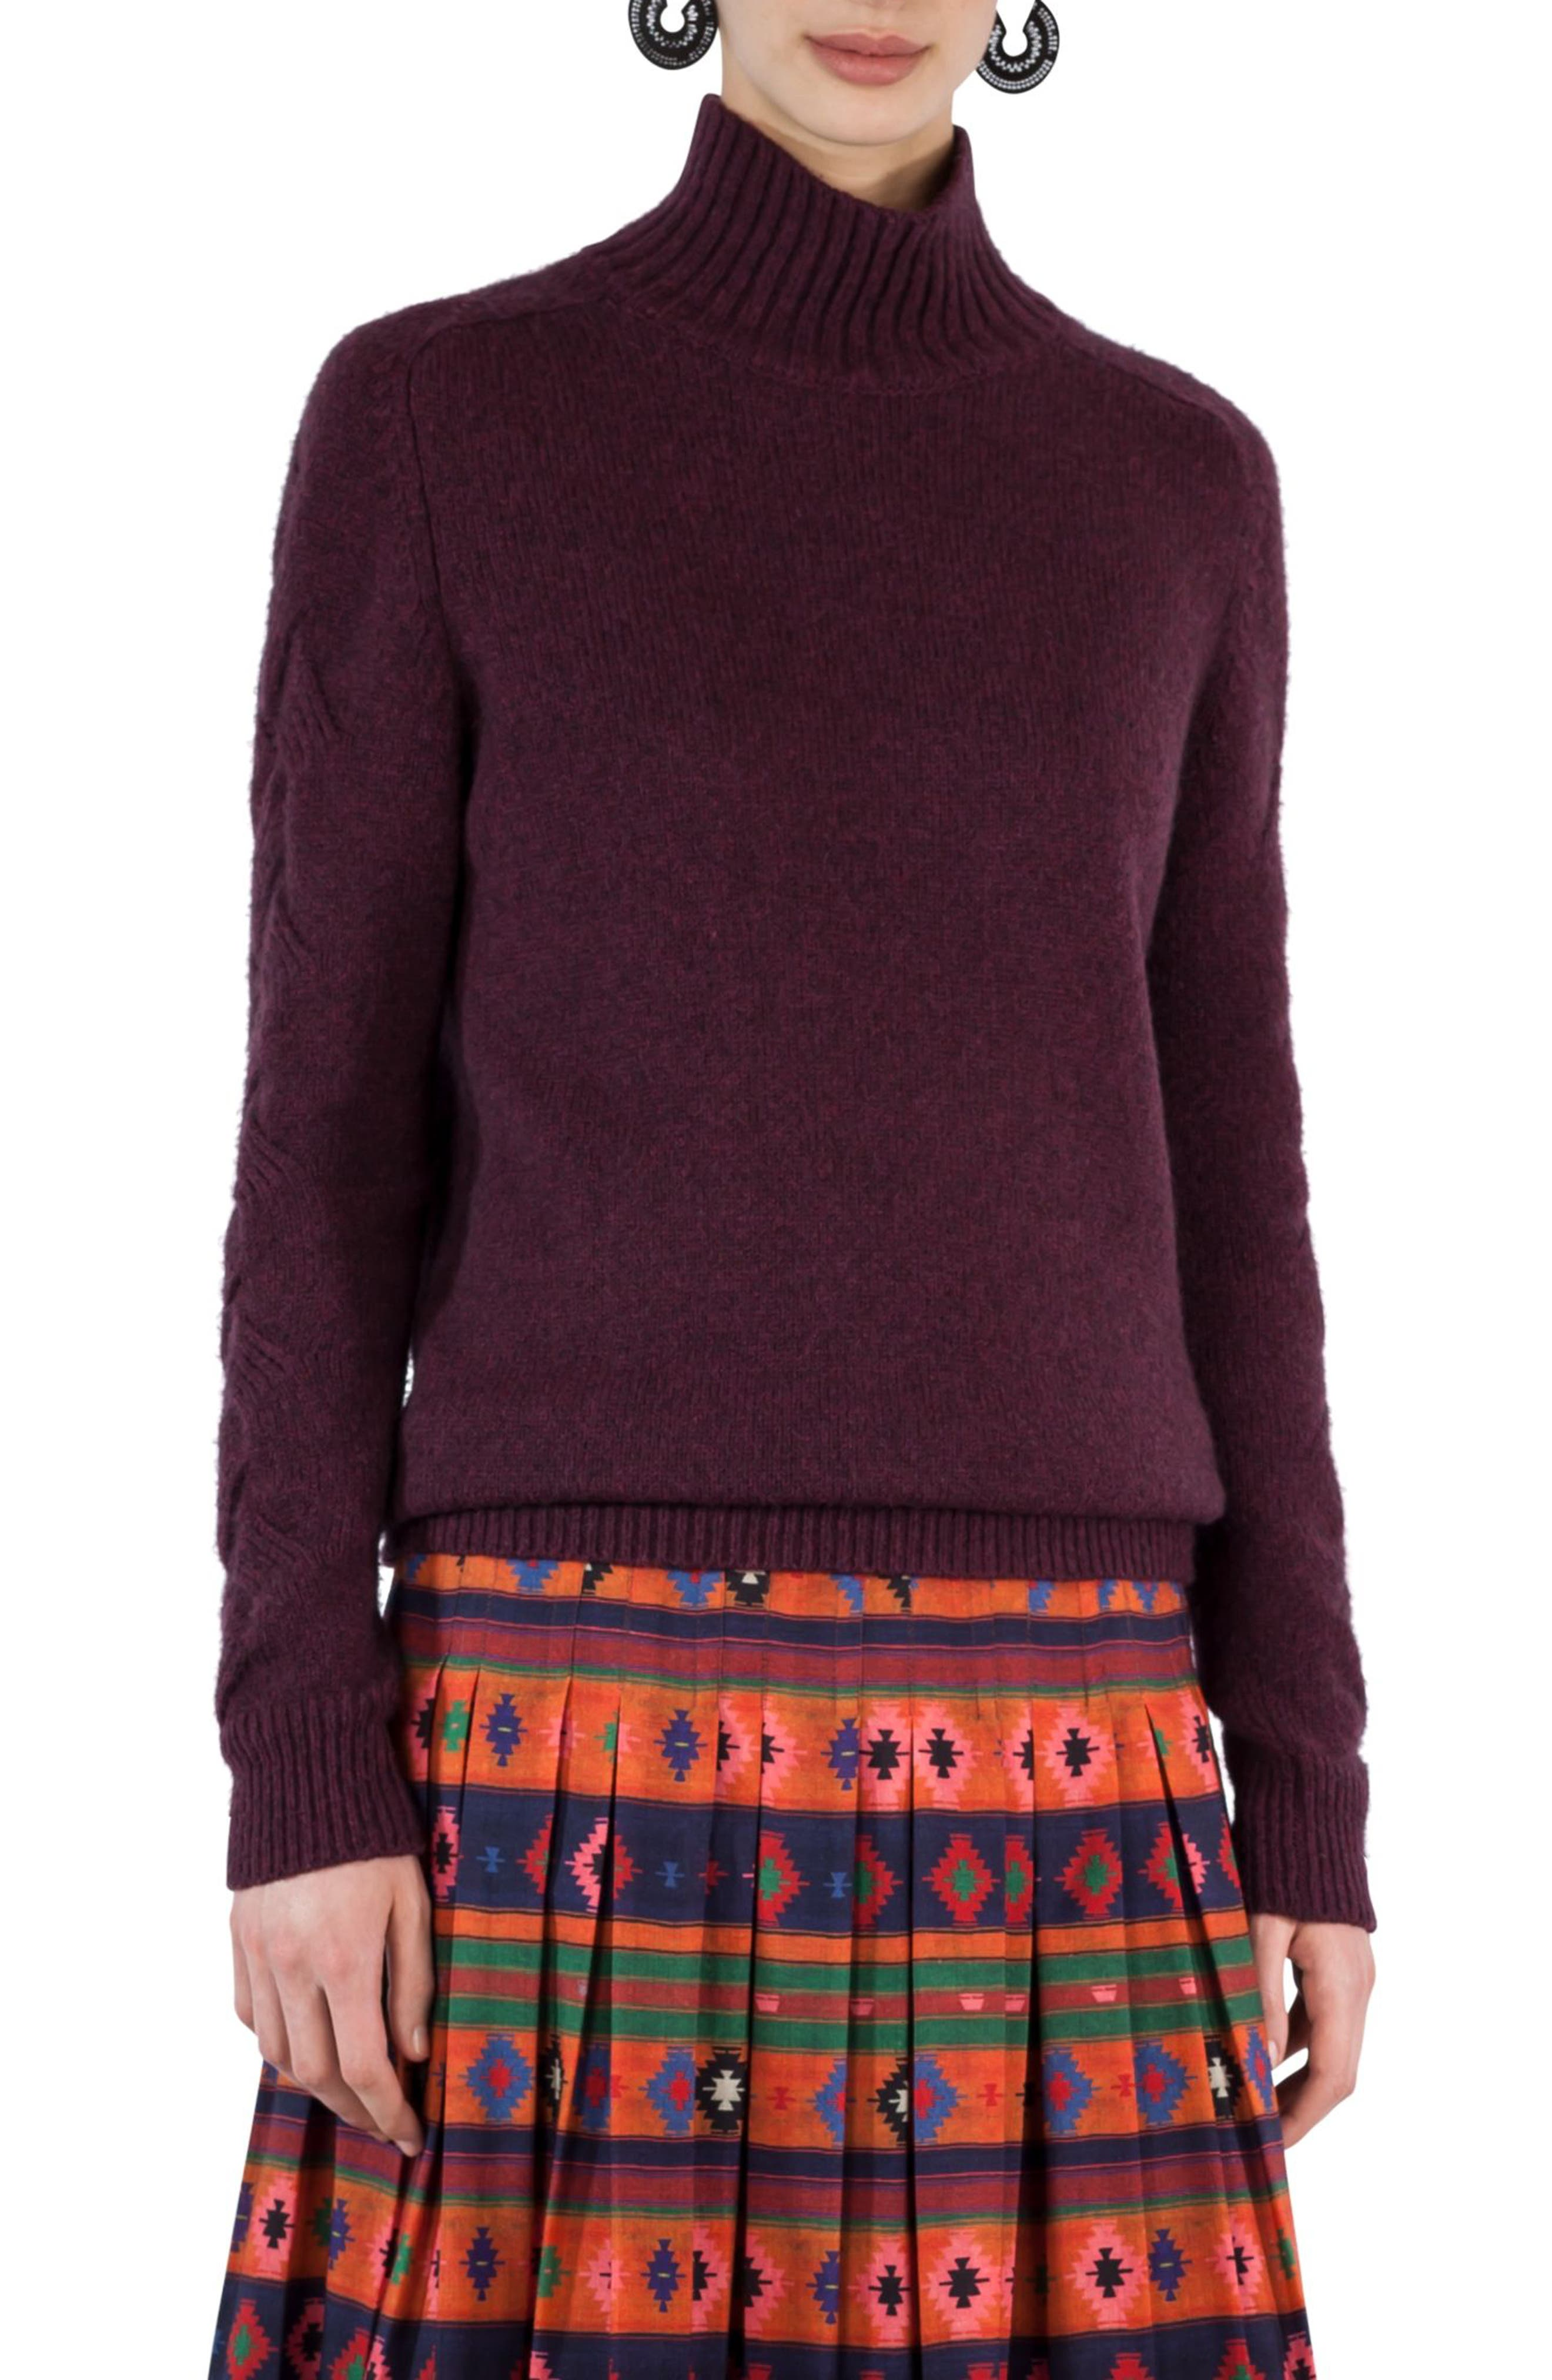 Wool Blend Turtleneck Sweater,                             Main thumbnail 1, color,                             930